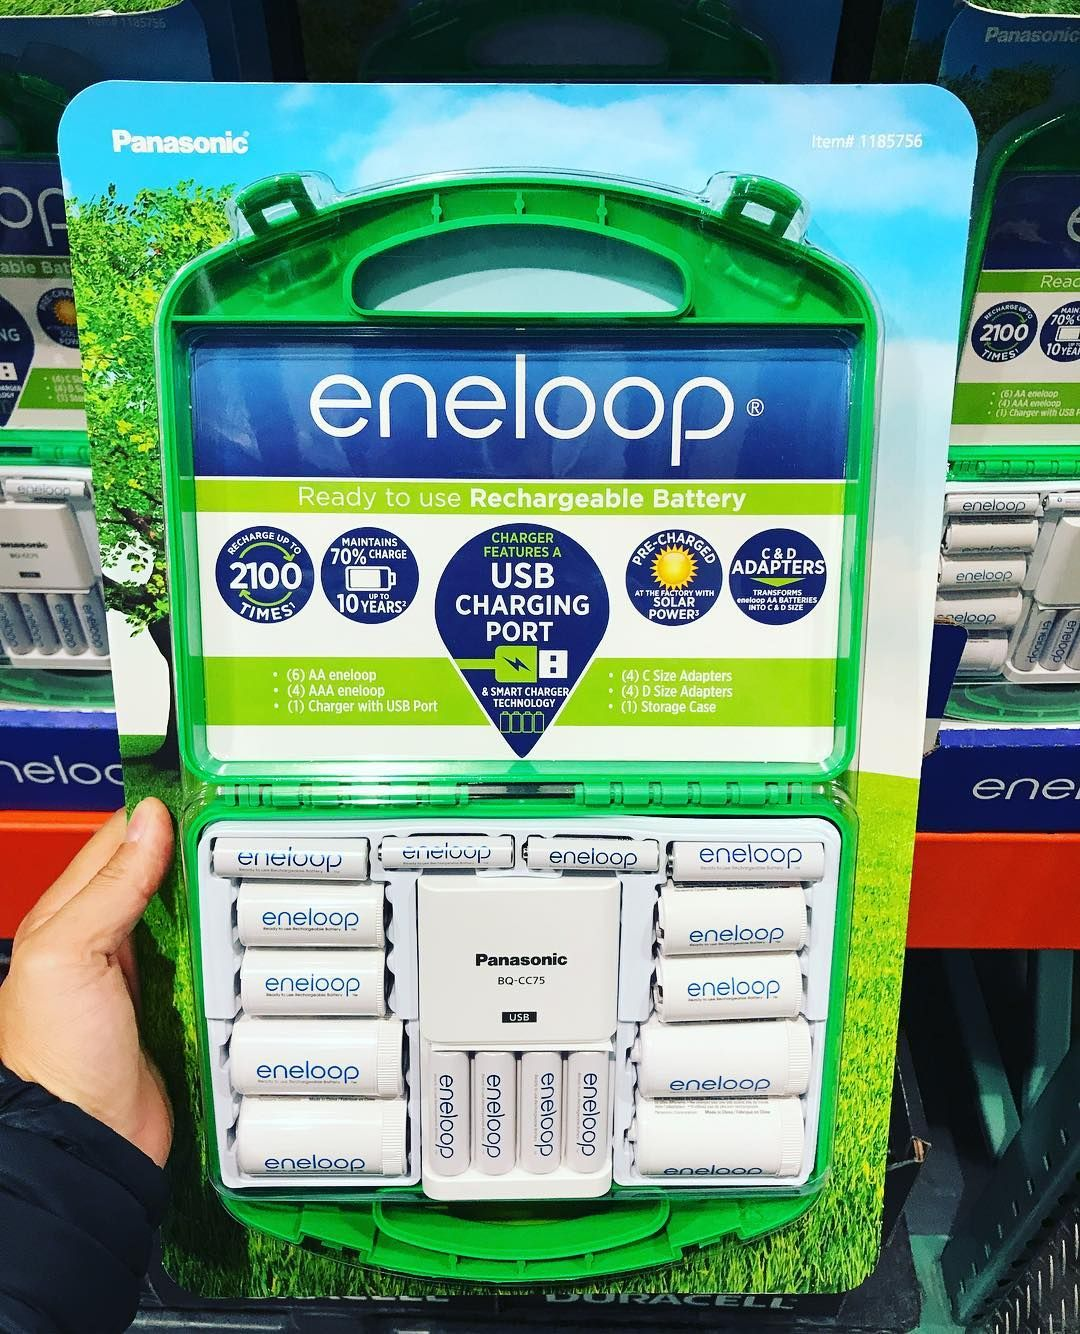 Finally Eneloop Rechargeable Batteries Kit Come In A Storage Case I Love And Swear By These Saved So Costco Deals Xbox Controller Rechargeable Batteries